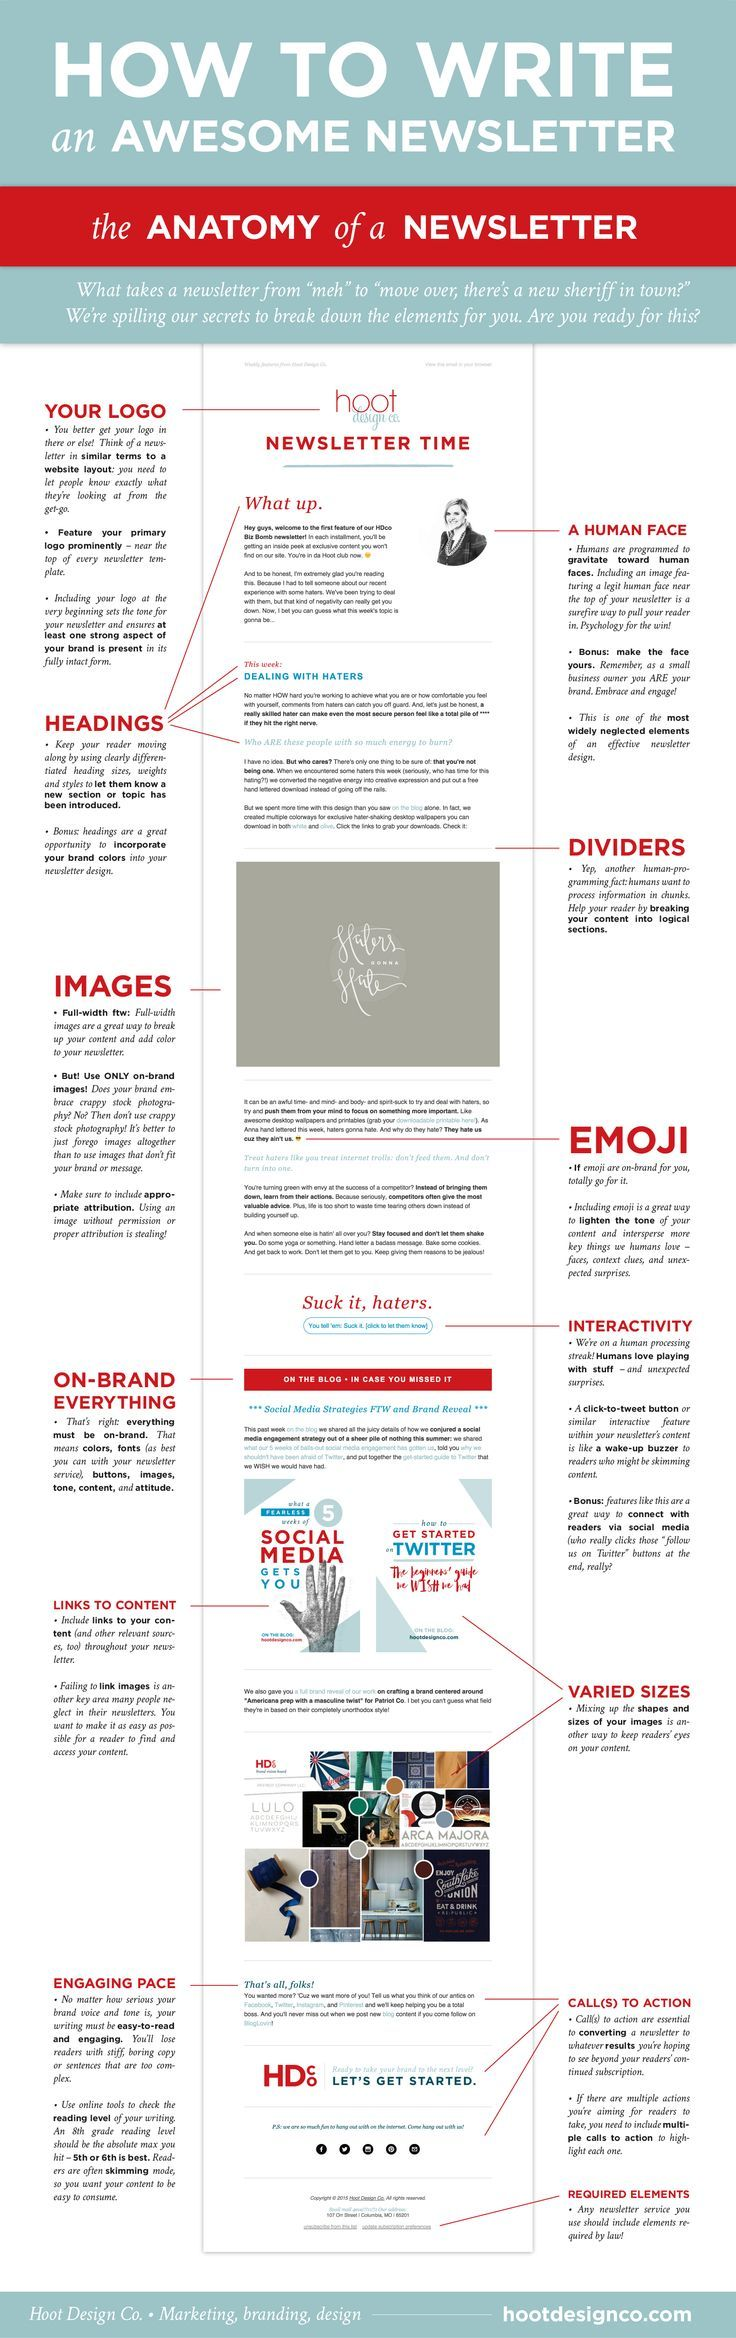 These are the key elements to writing a good newsletter. Keep them in mind when…